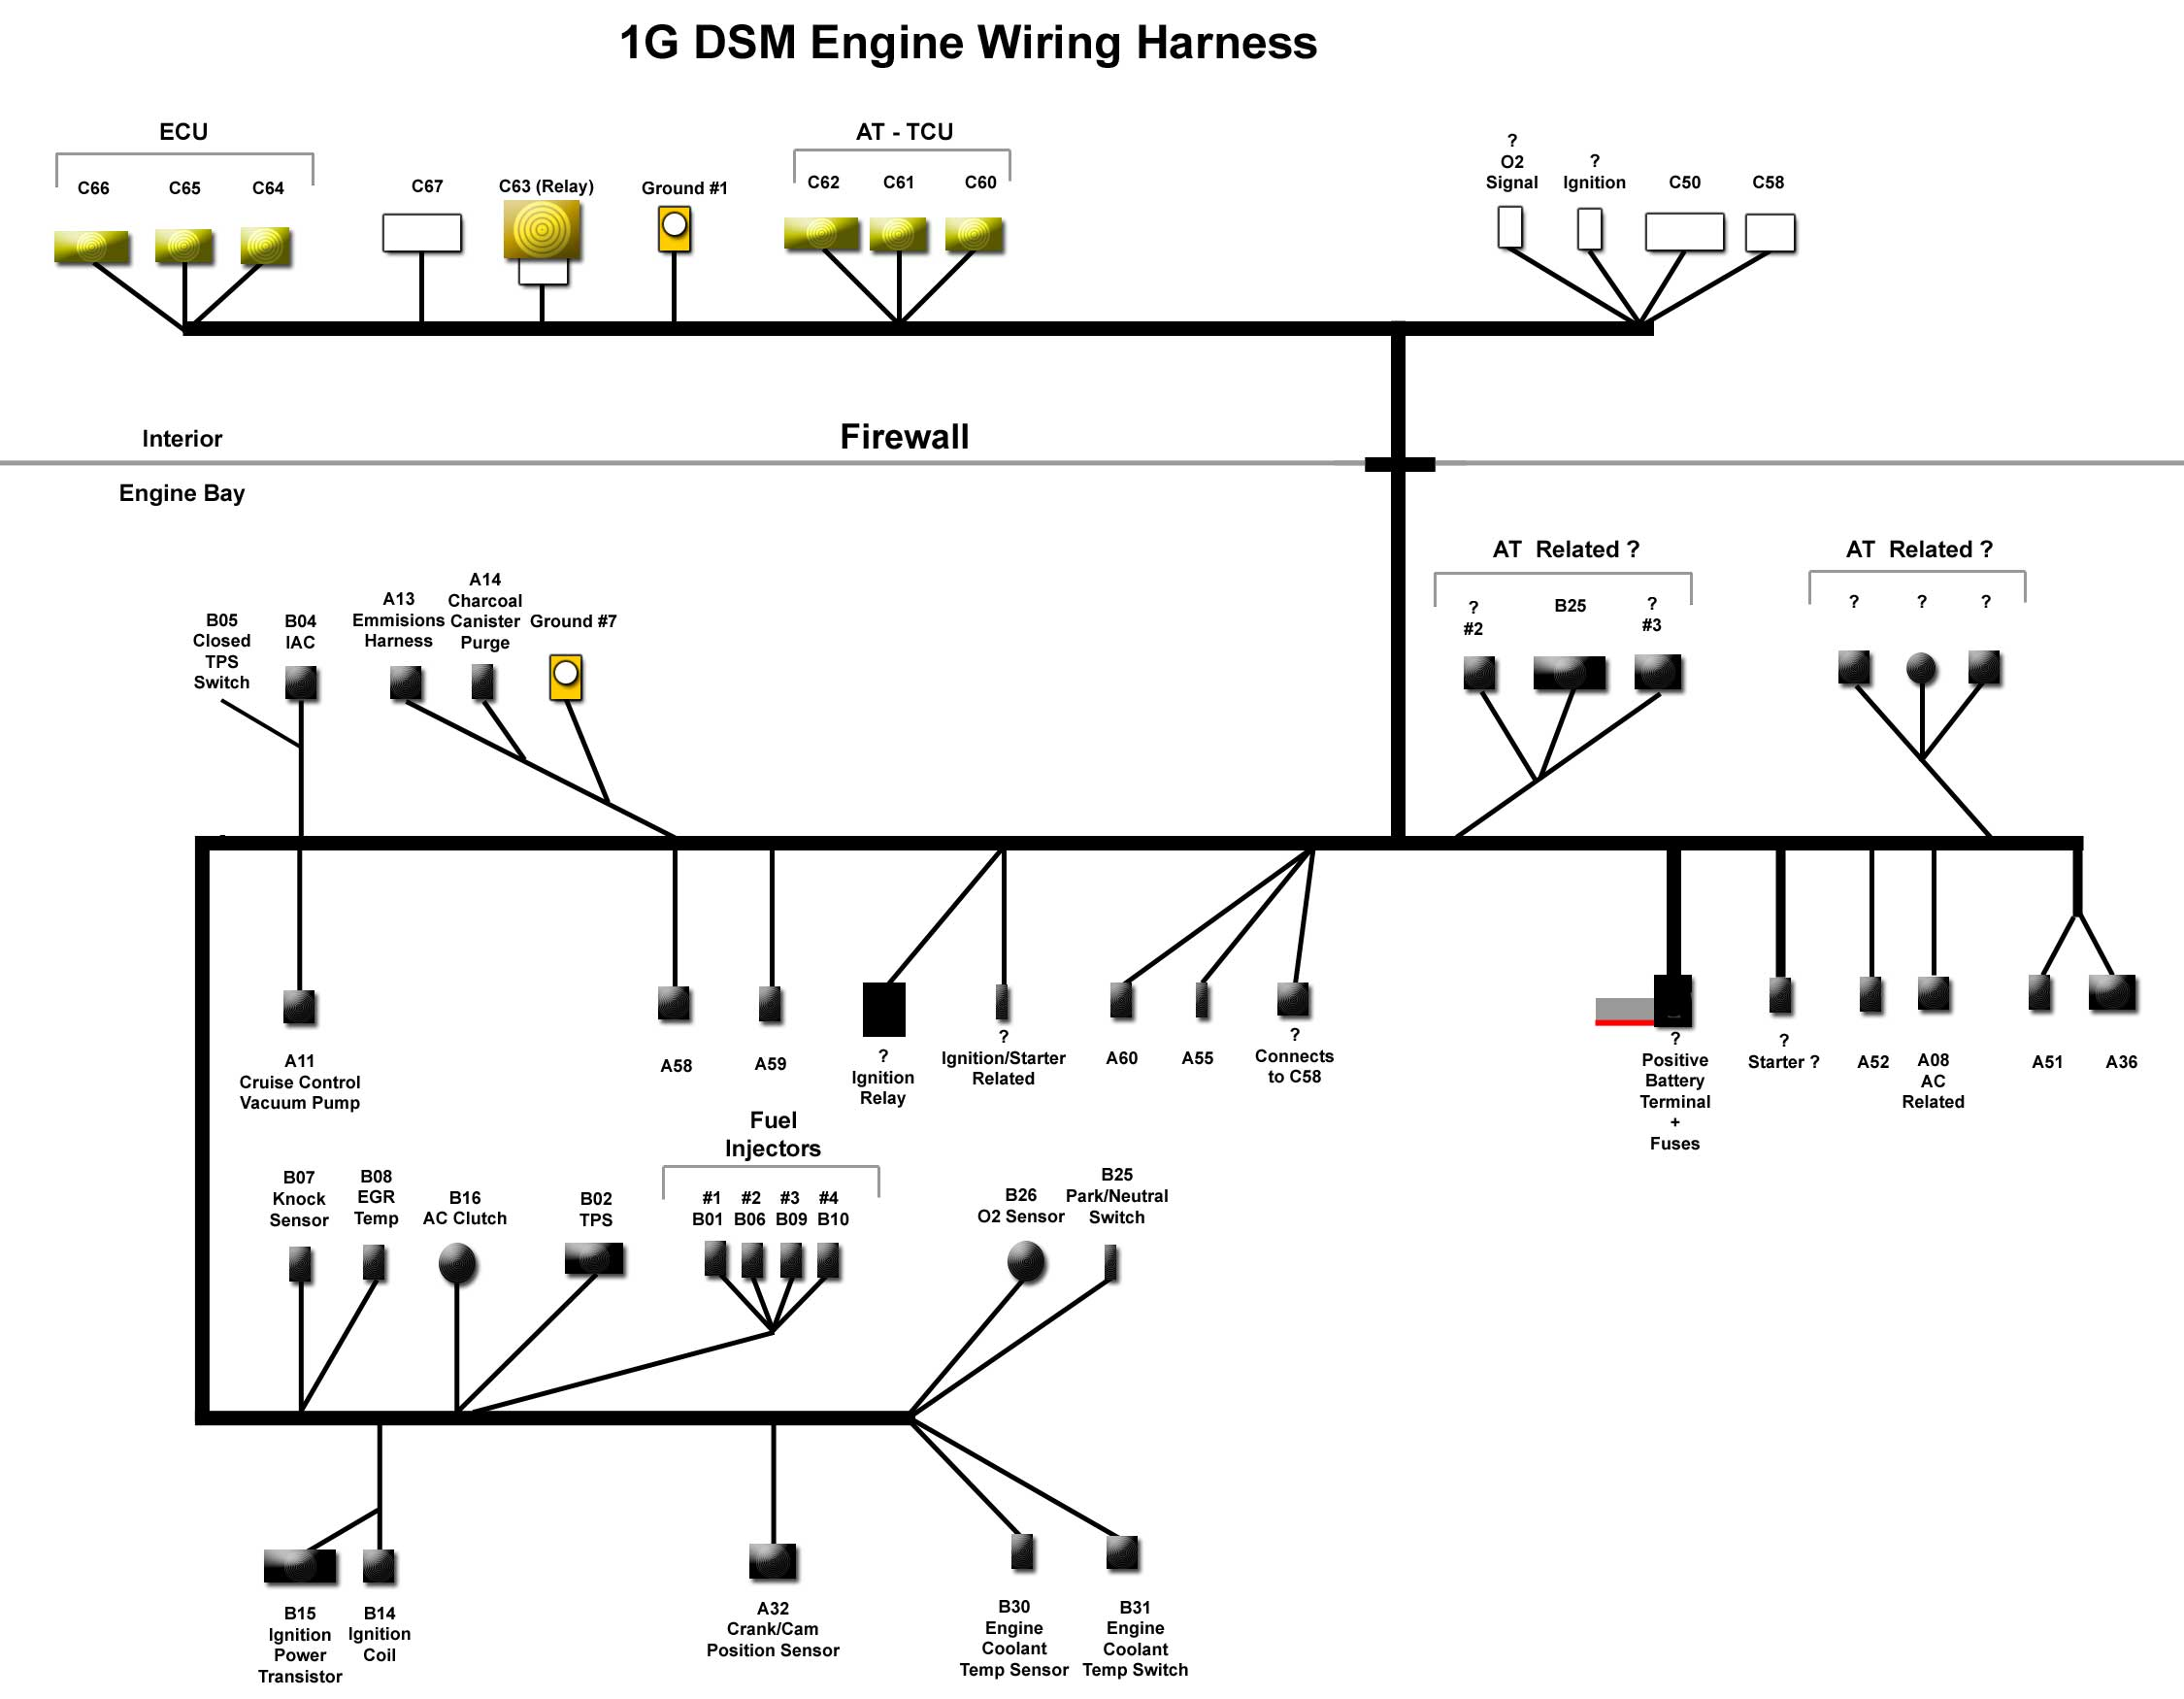 Wiring Harness Diagram Automotive 1991 Ford F 150 1gb Dsm 4g63 Turbo Rh Tech Mirage Performance Com 2018 Gmc 91